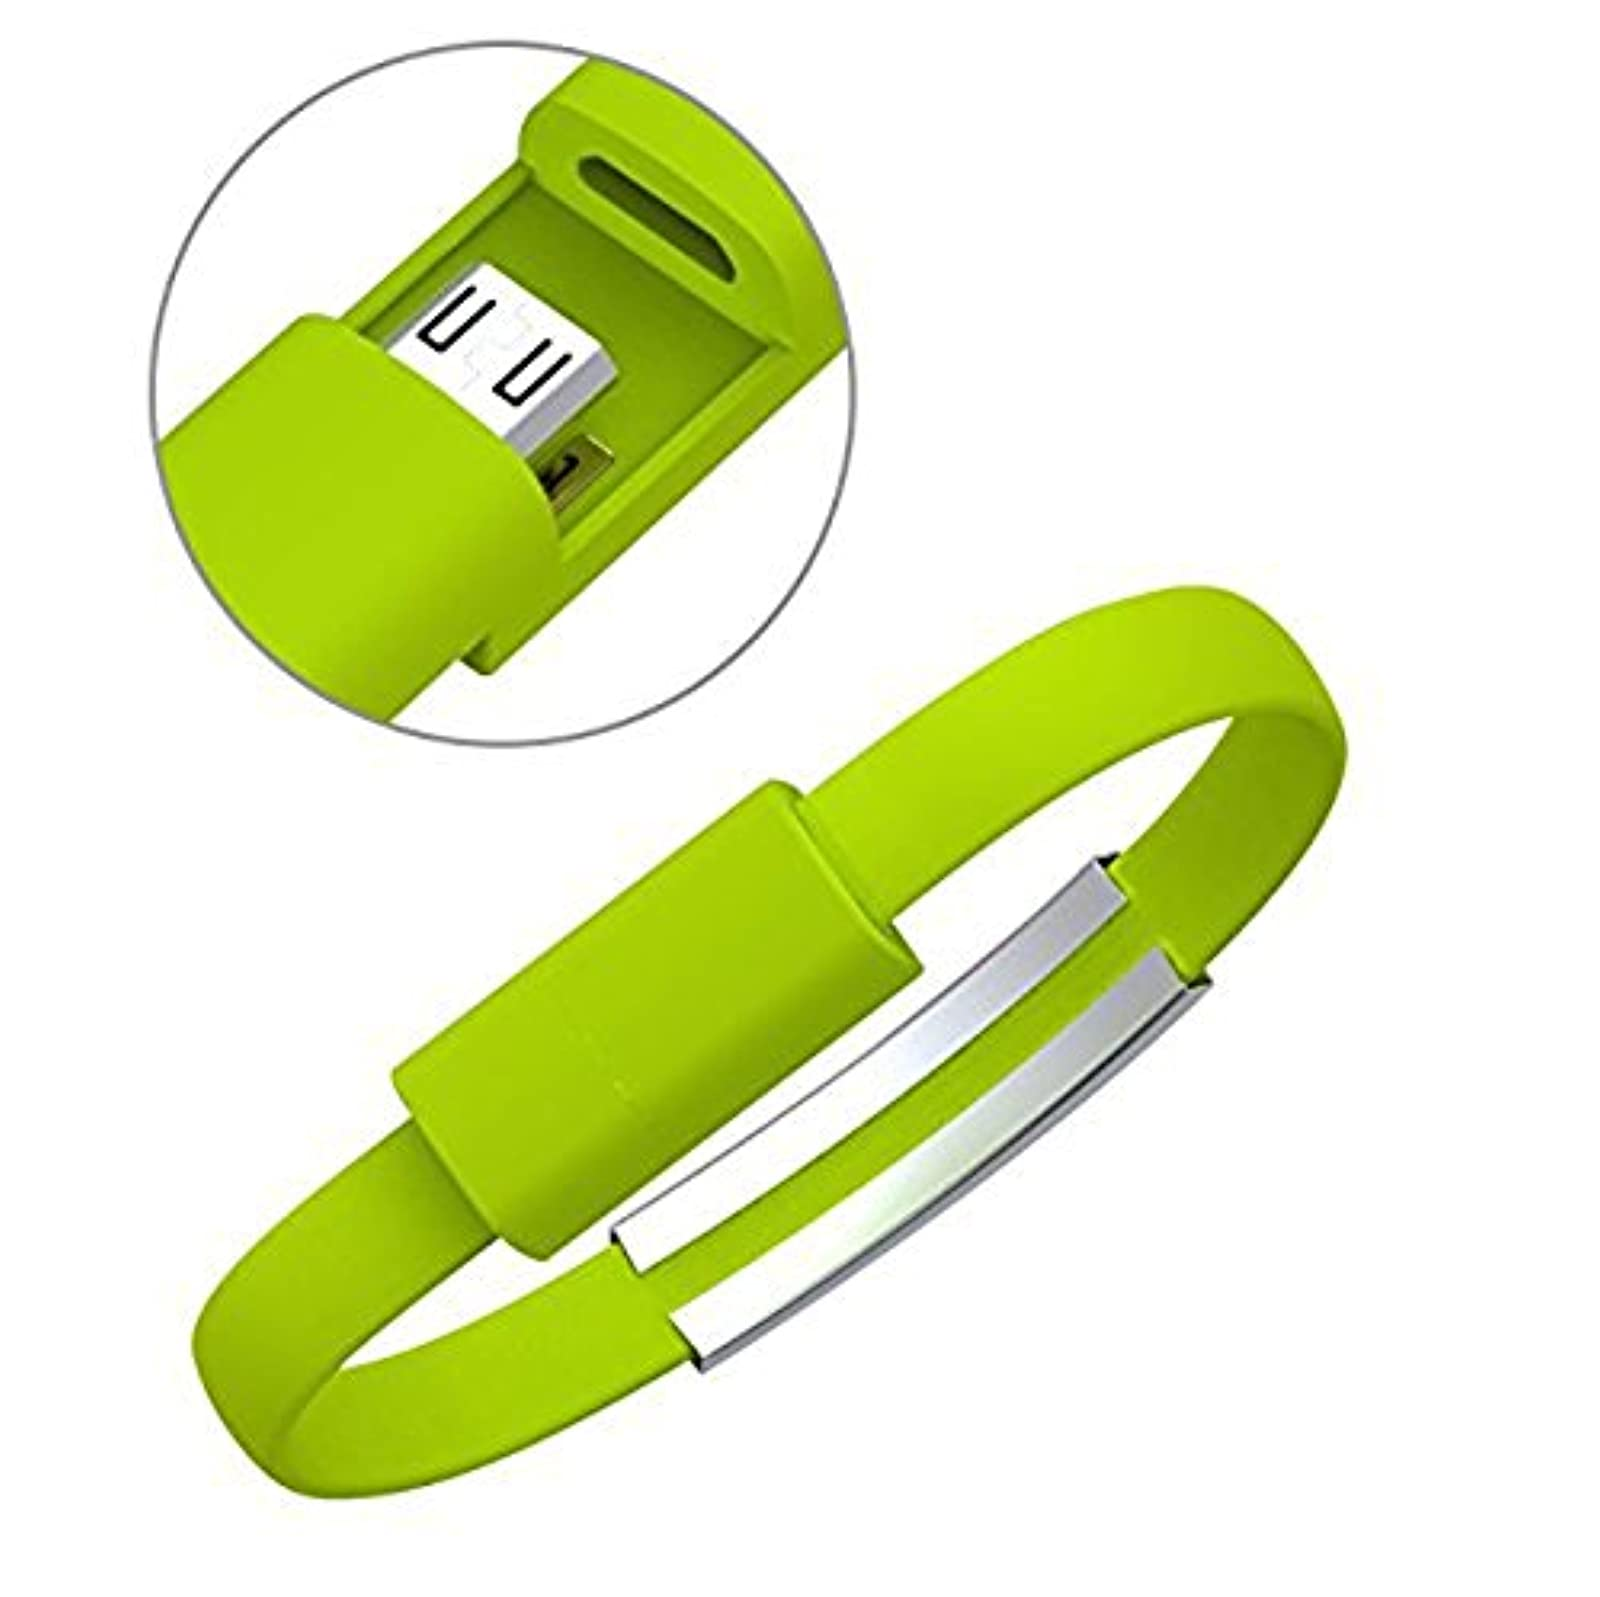 Micro USB Cable Bracelet For Android Smartphones And Other Devices Lime Green Ch